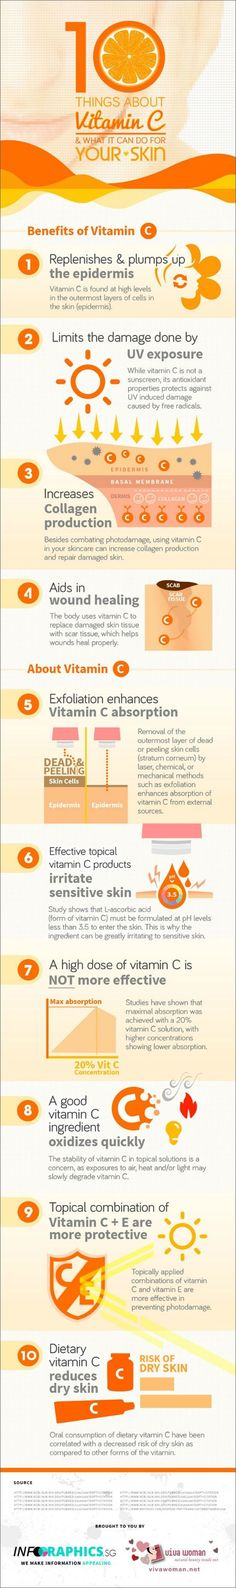 10 things about vitamin C for your skin. KUR SPA